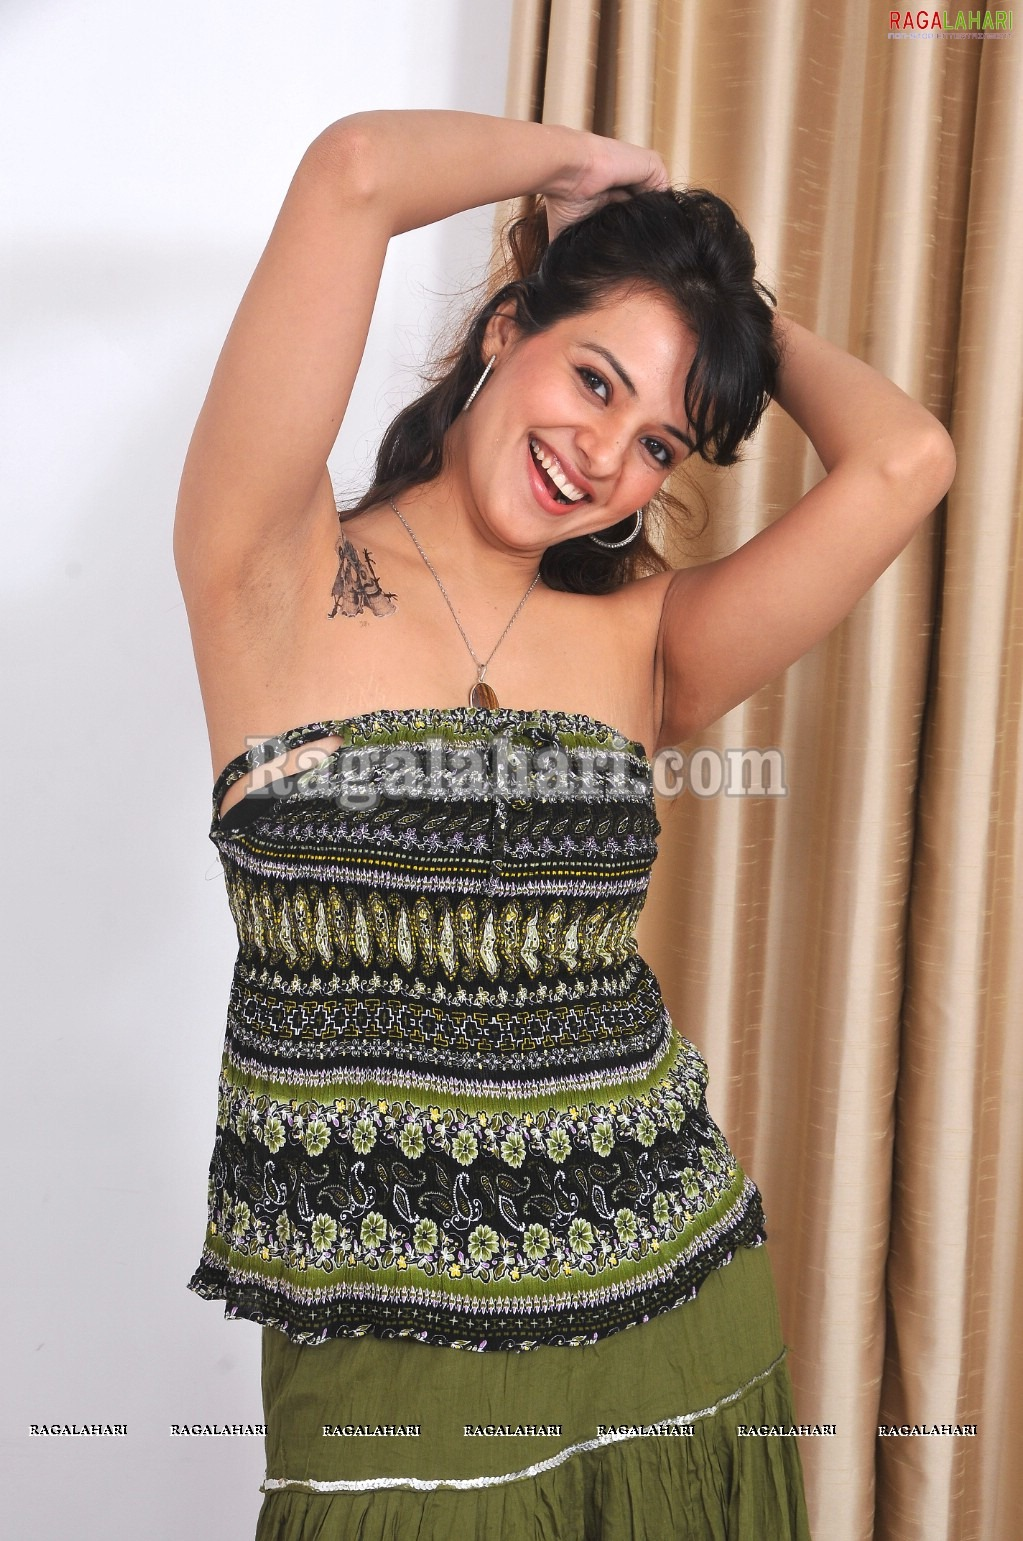 Saloni Armpit Show Hot And Sext Photo Gallery  -2410